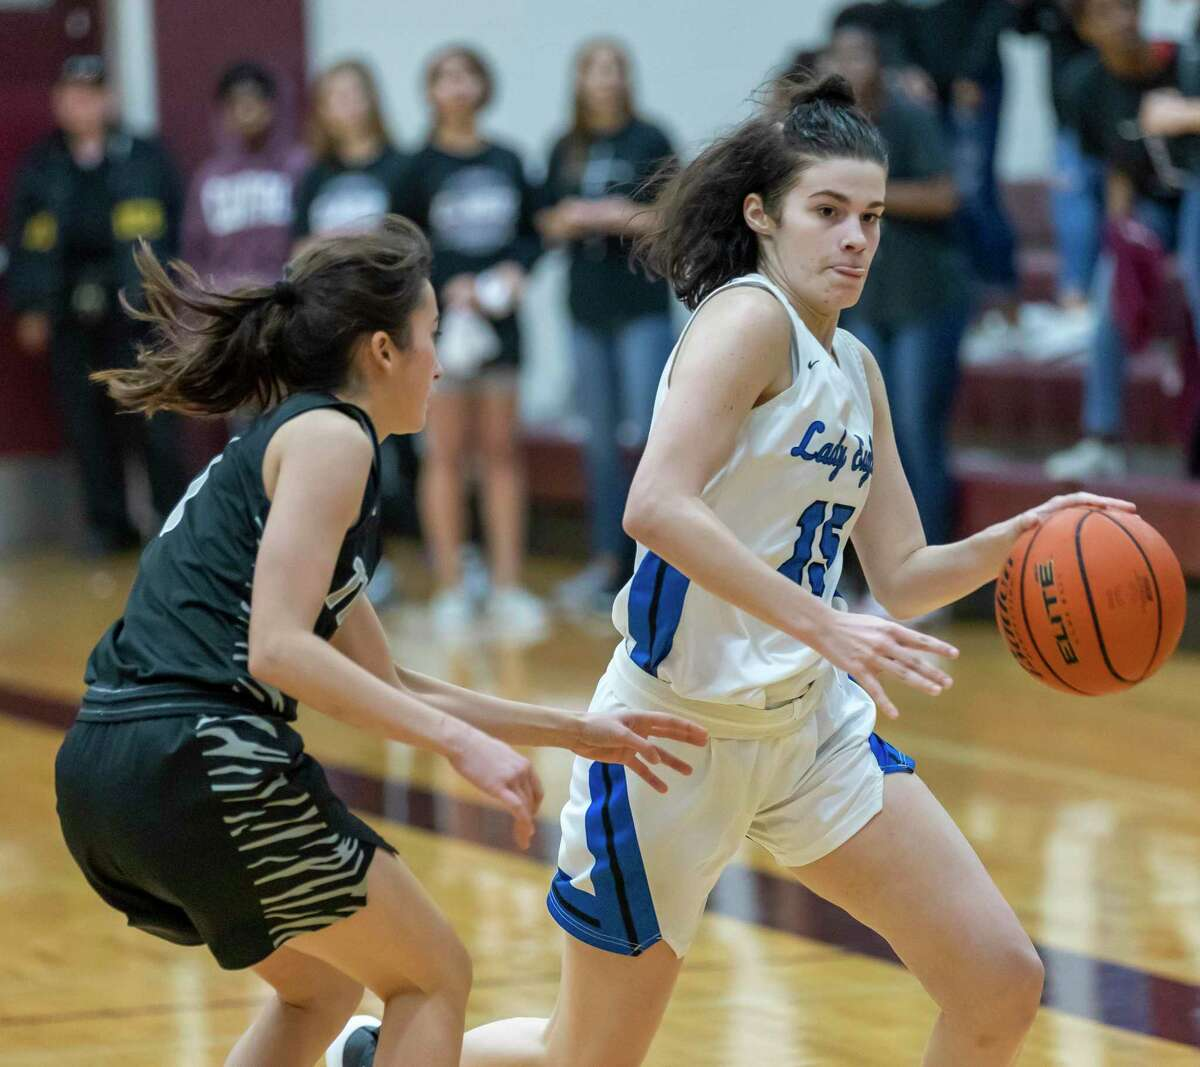 New Caney power forward Michael Mize (15) dribbles the ball toward the basket while under pressure from A&M Consolidated guard Sarah Hathorn (1) in a Region III-5A bi-district girls basketball playoff during the second half at Magnolia High School in Magnolia, Tuesday, Feb. 18, 2020.